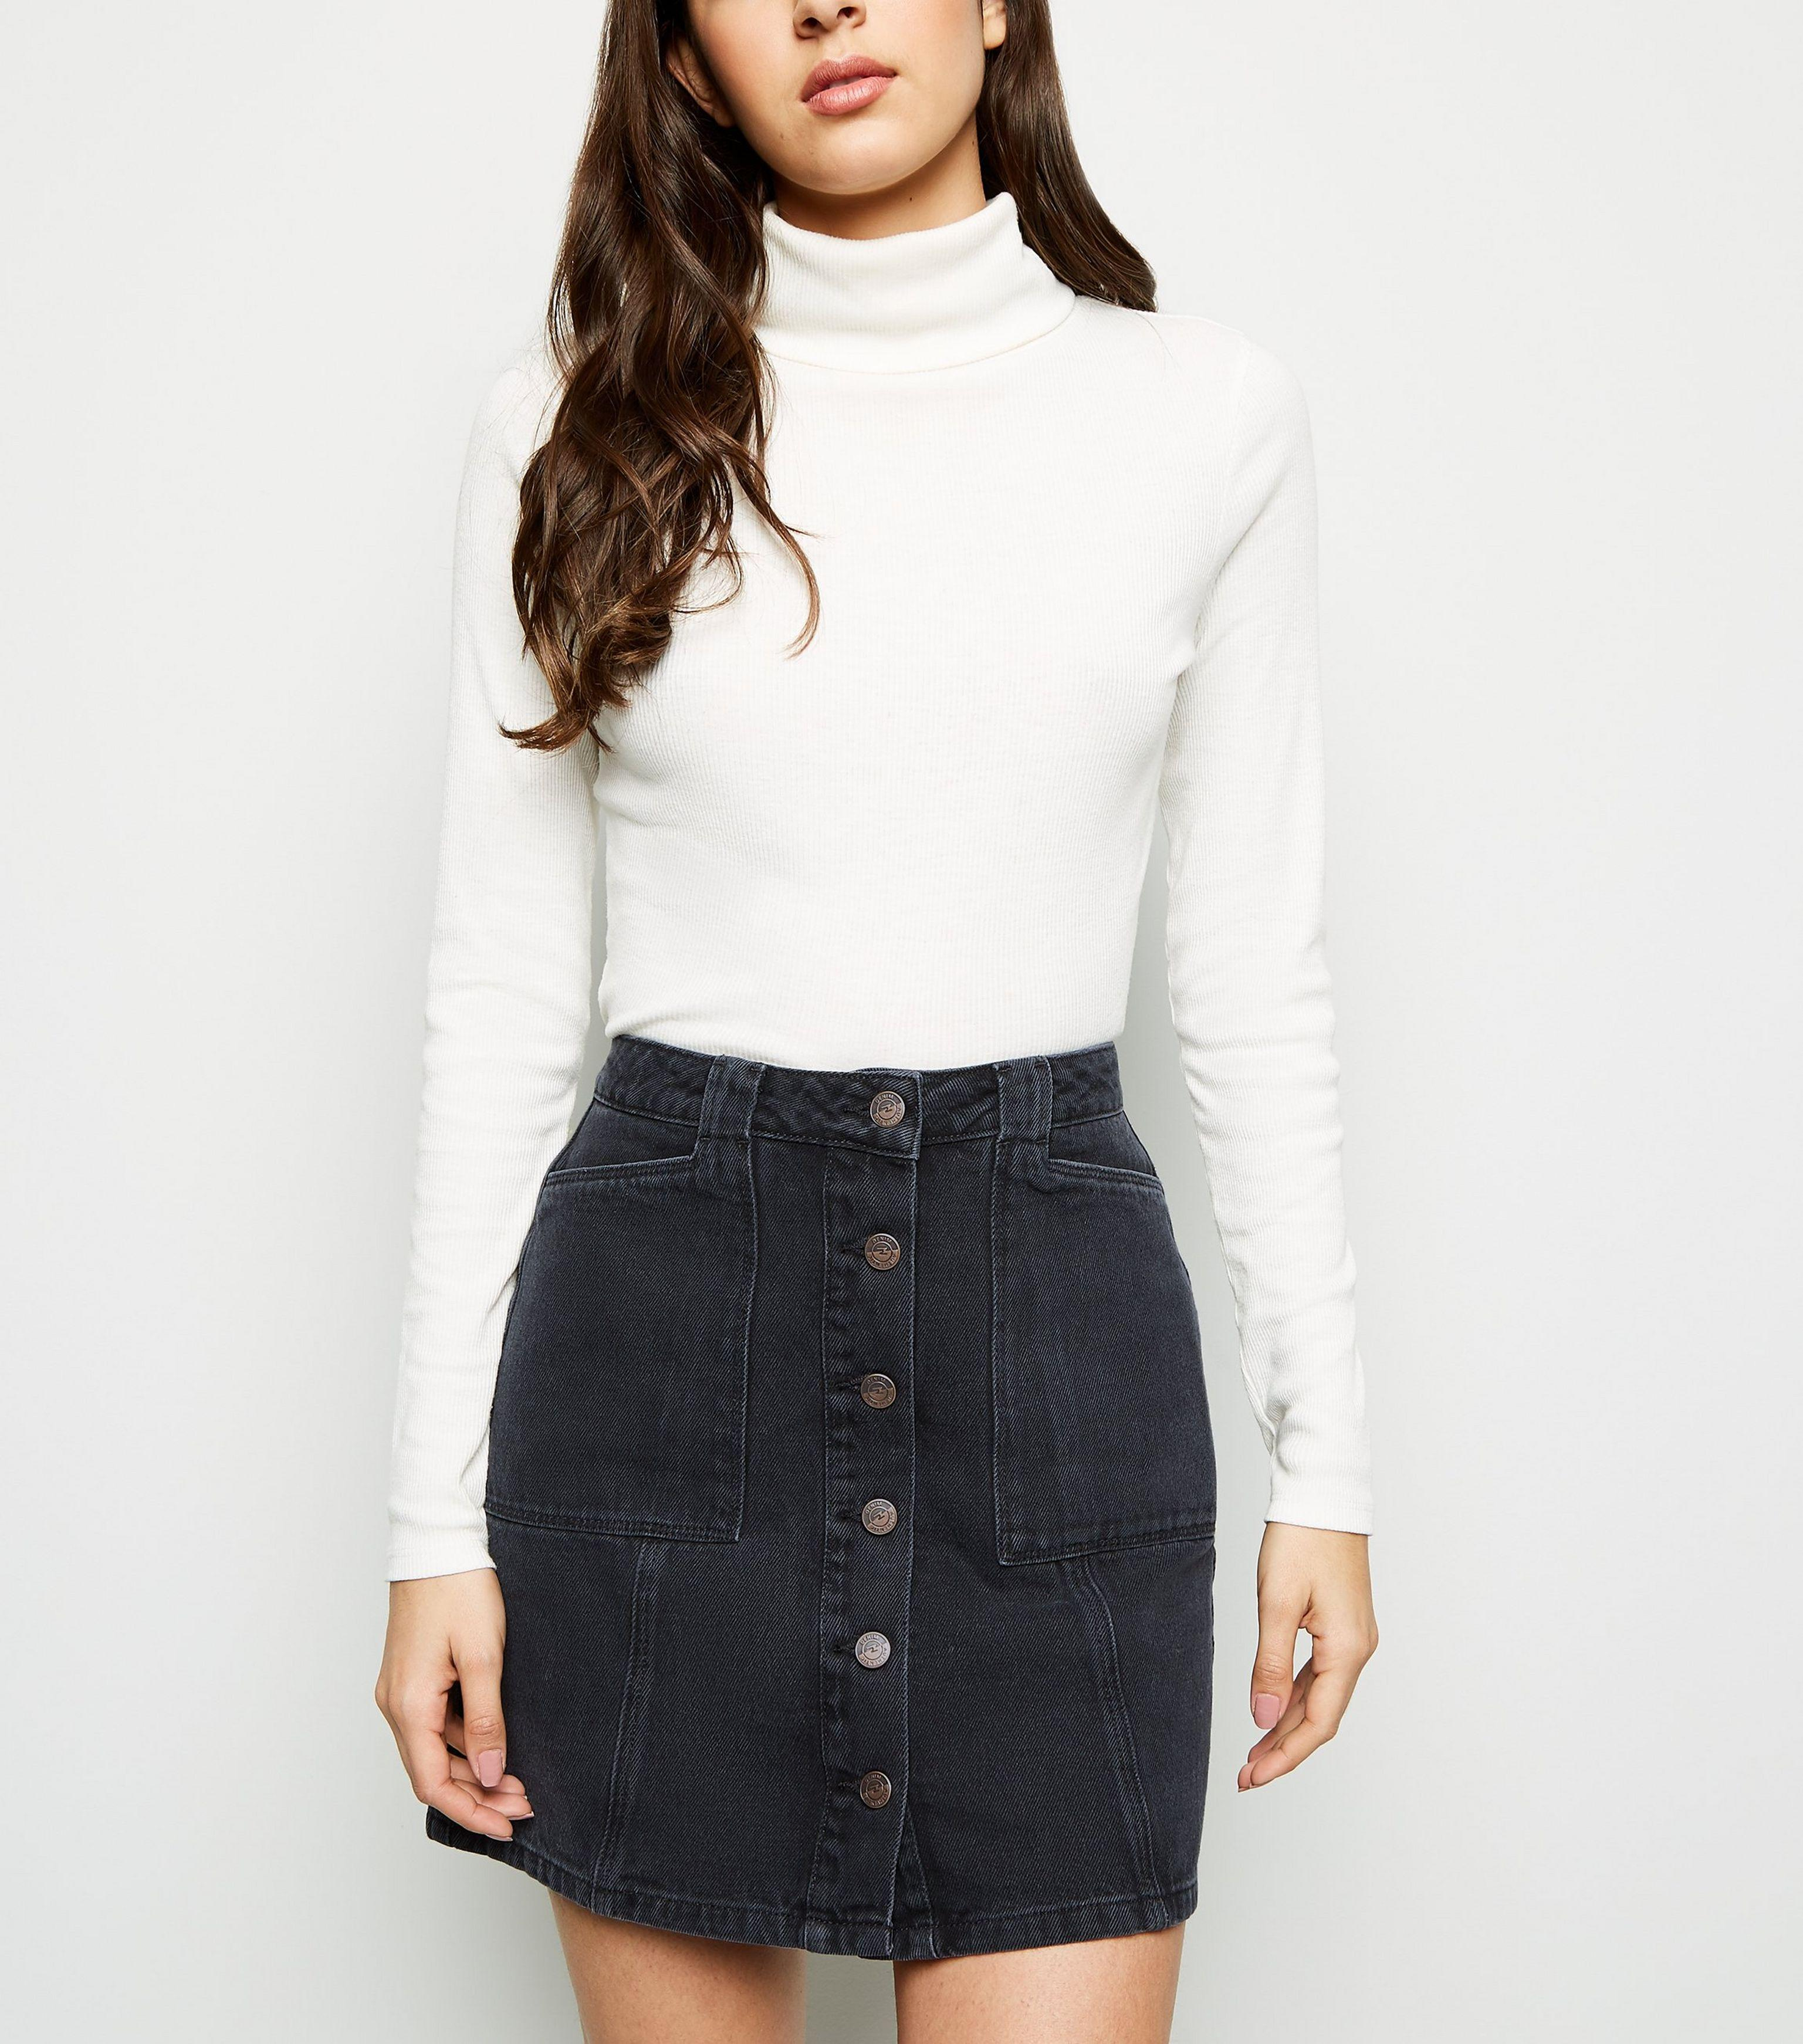 84a2a3ed51 New Look Black Patch Pocket Denim Skirt in Black - Lyst